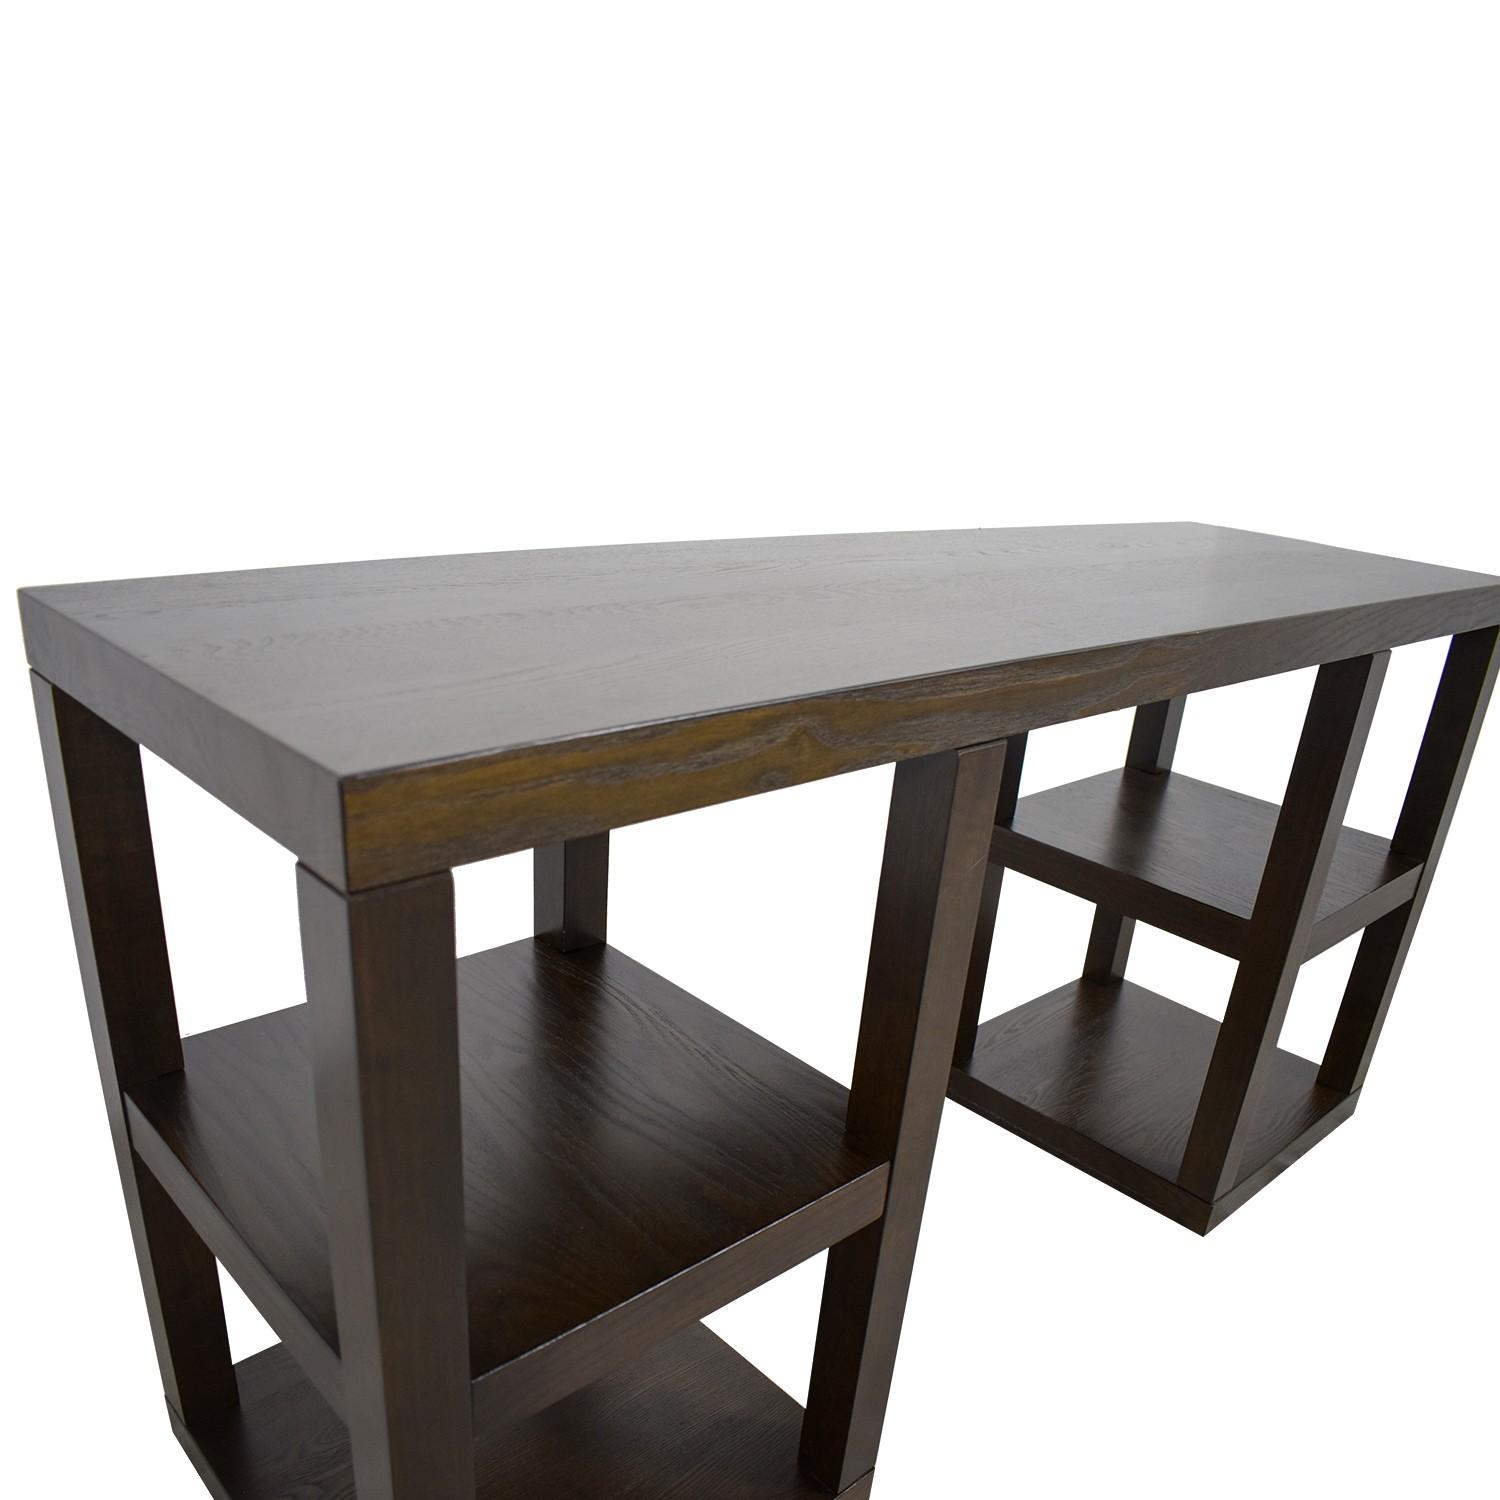 West Elm 2 X 2 Console Desk in Chocolate - image-5